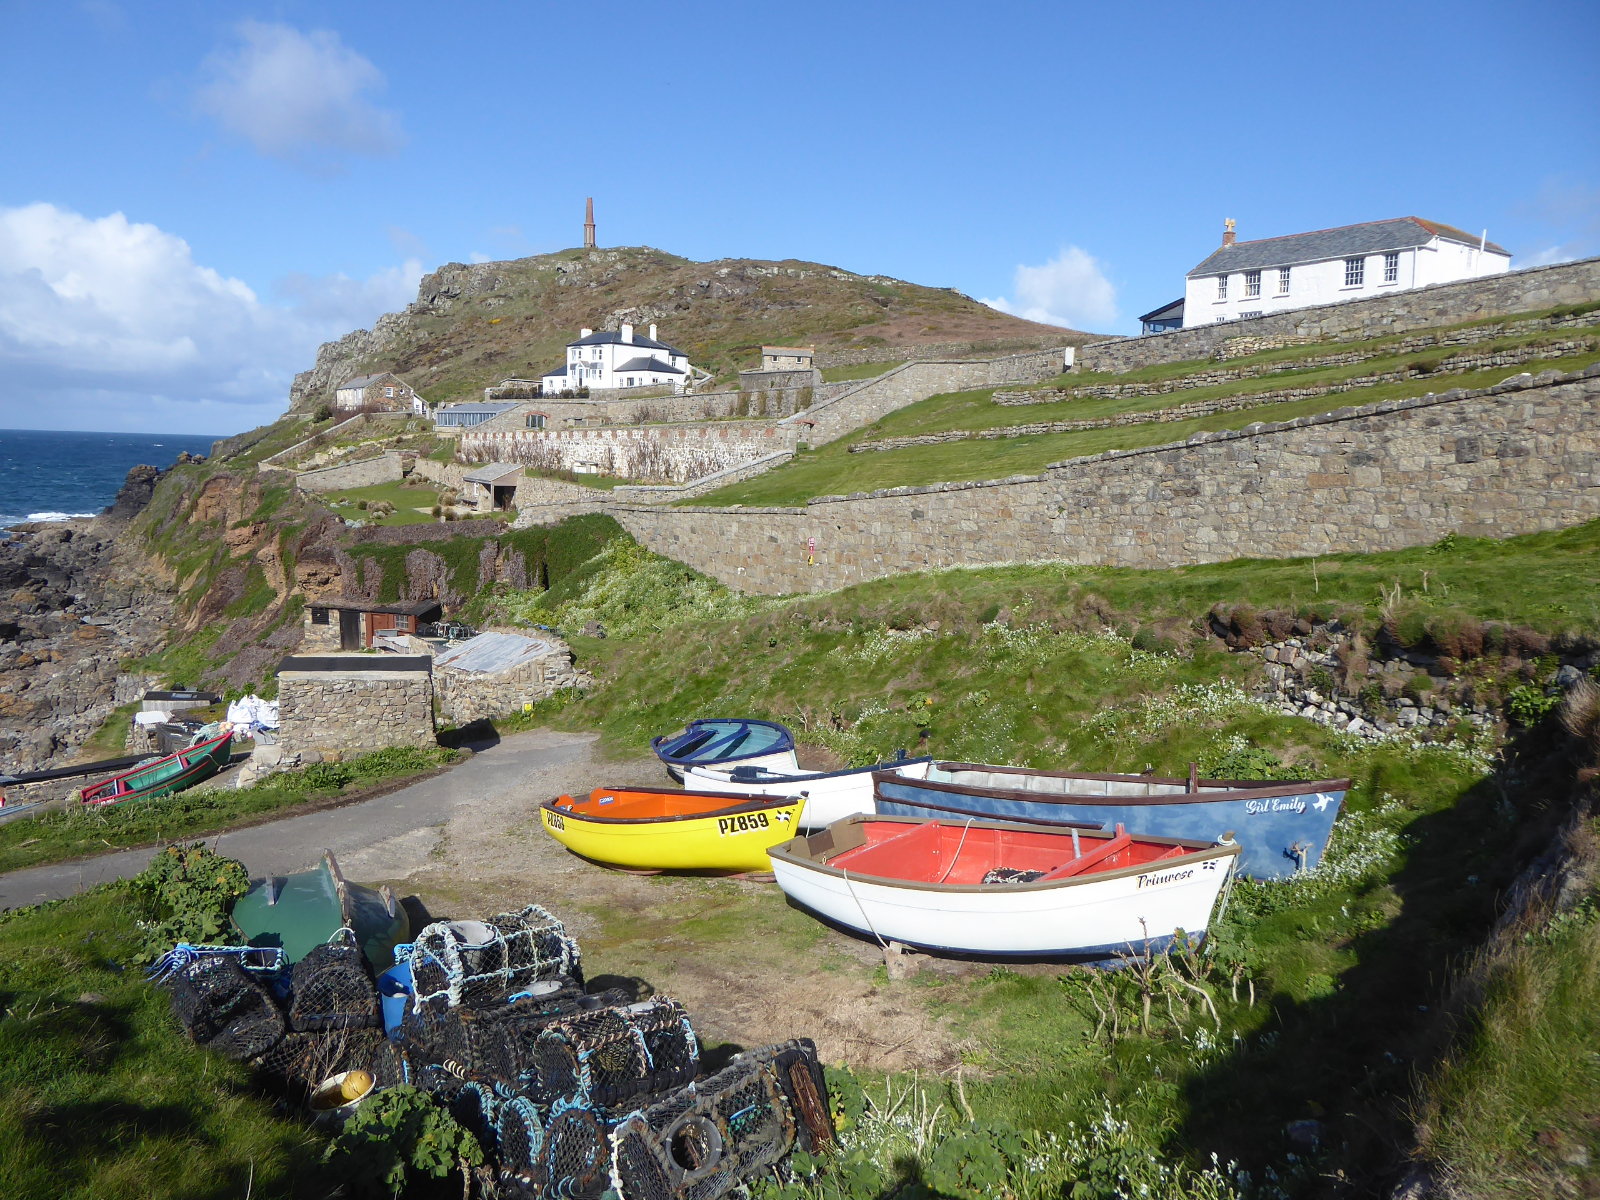 9 day guided Cornwall walking holiday and culture tour in England